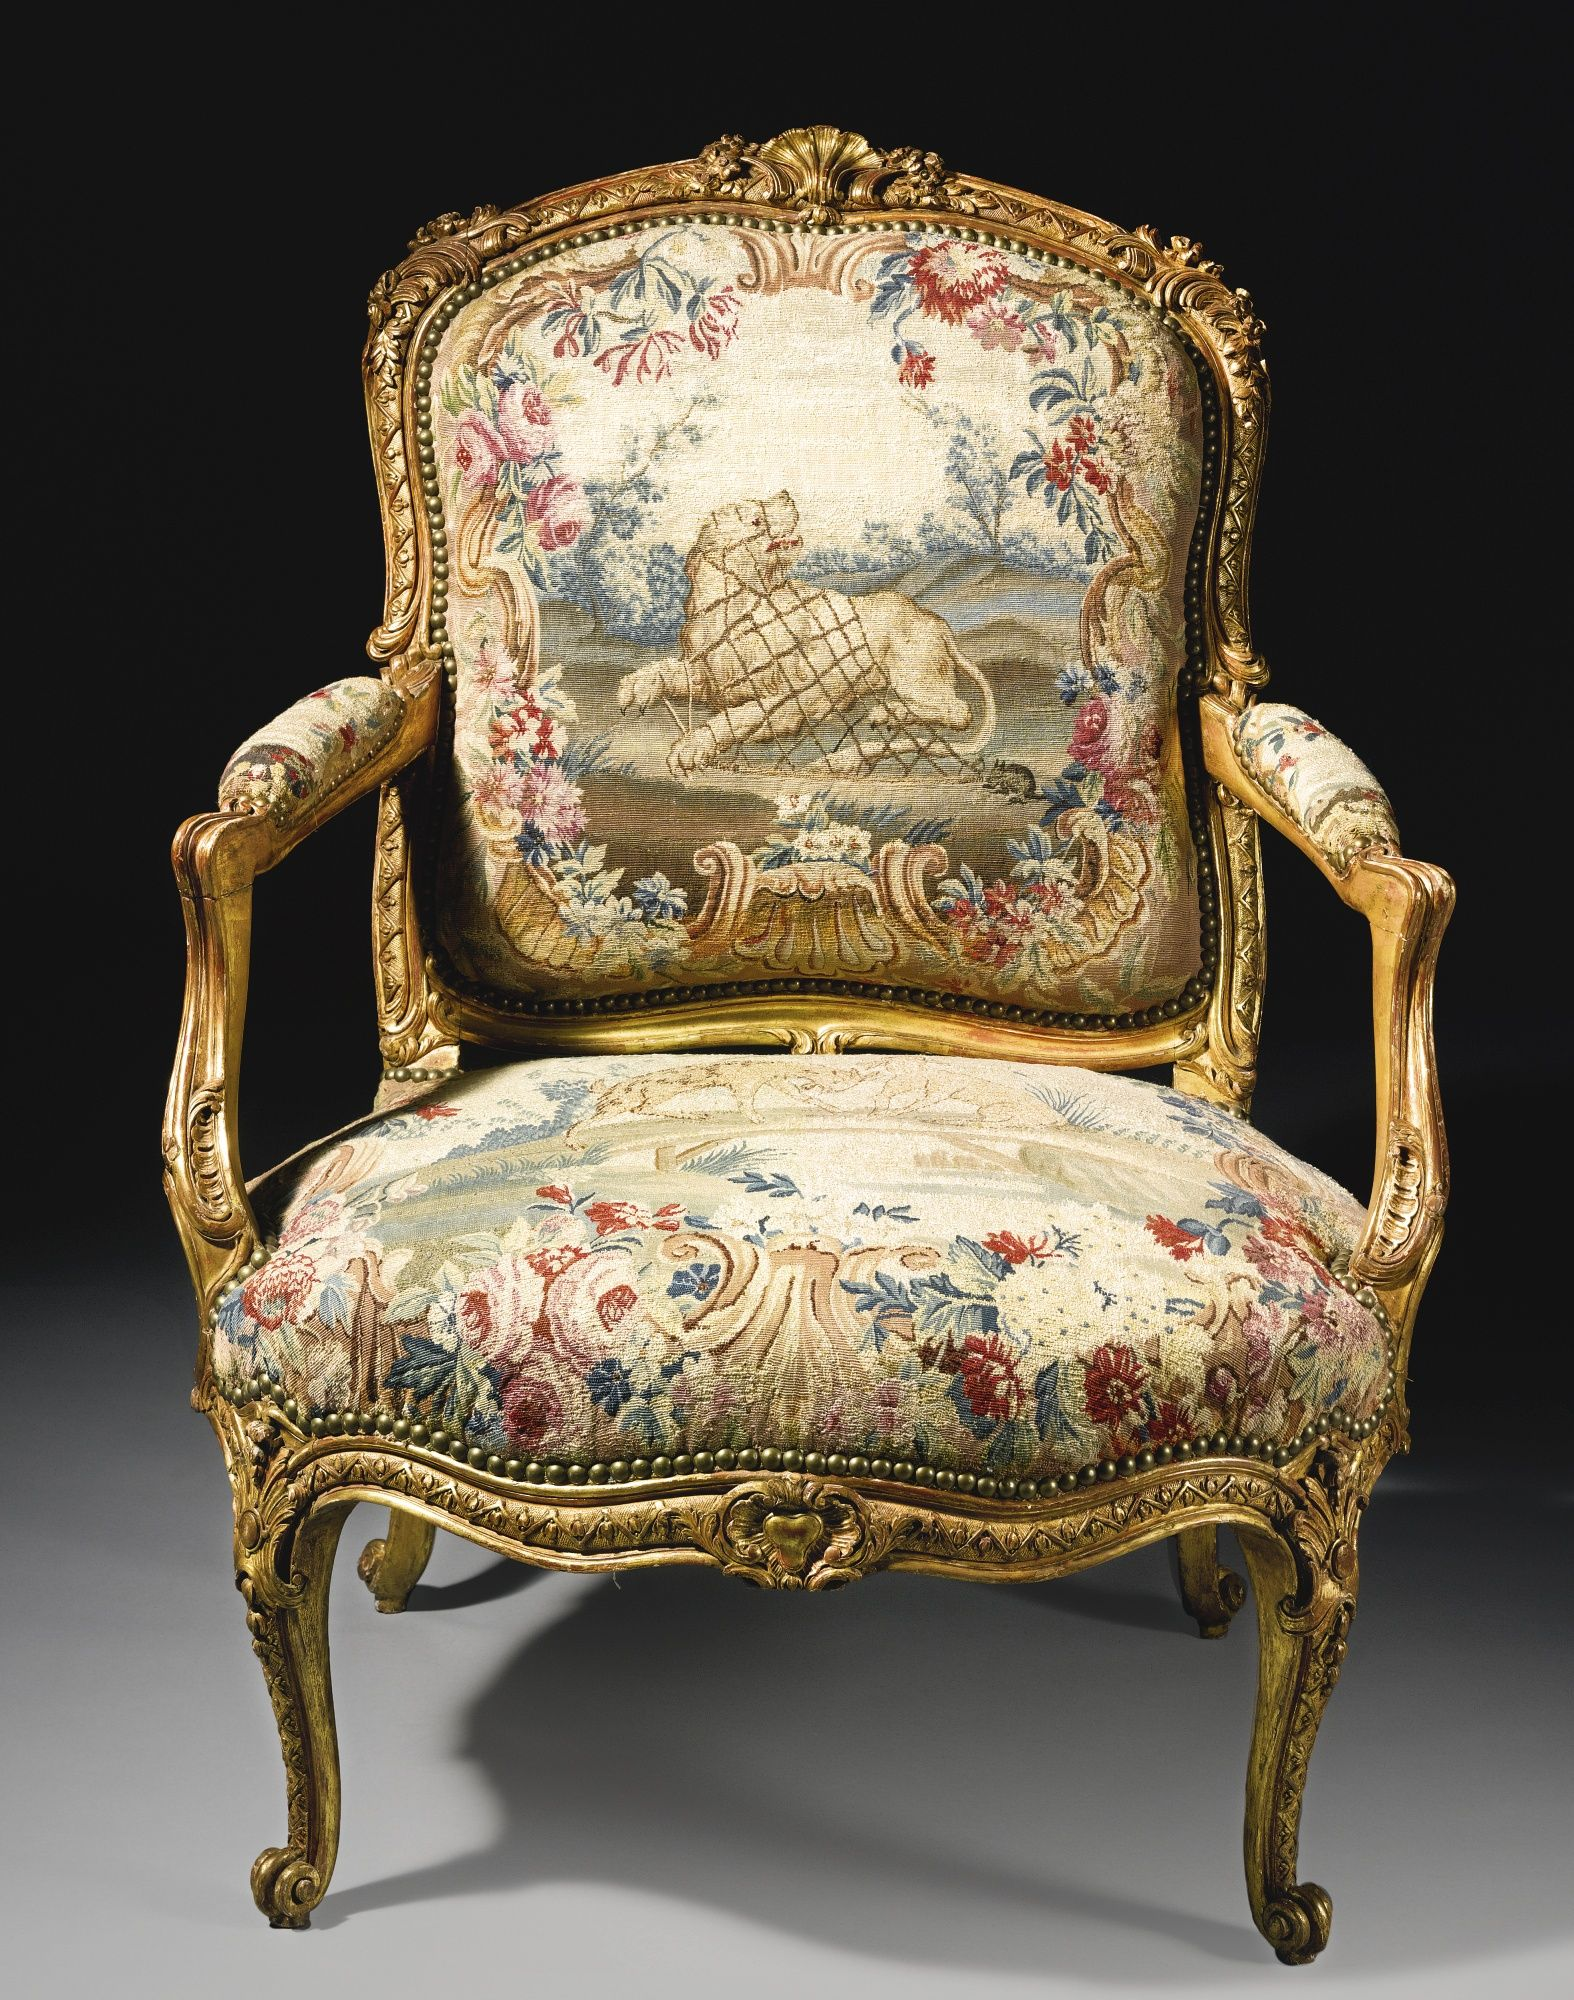 A Rare Pair Of Louis Xv Carved Giltwood Fauteuils - Fauteuils Style Rococo